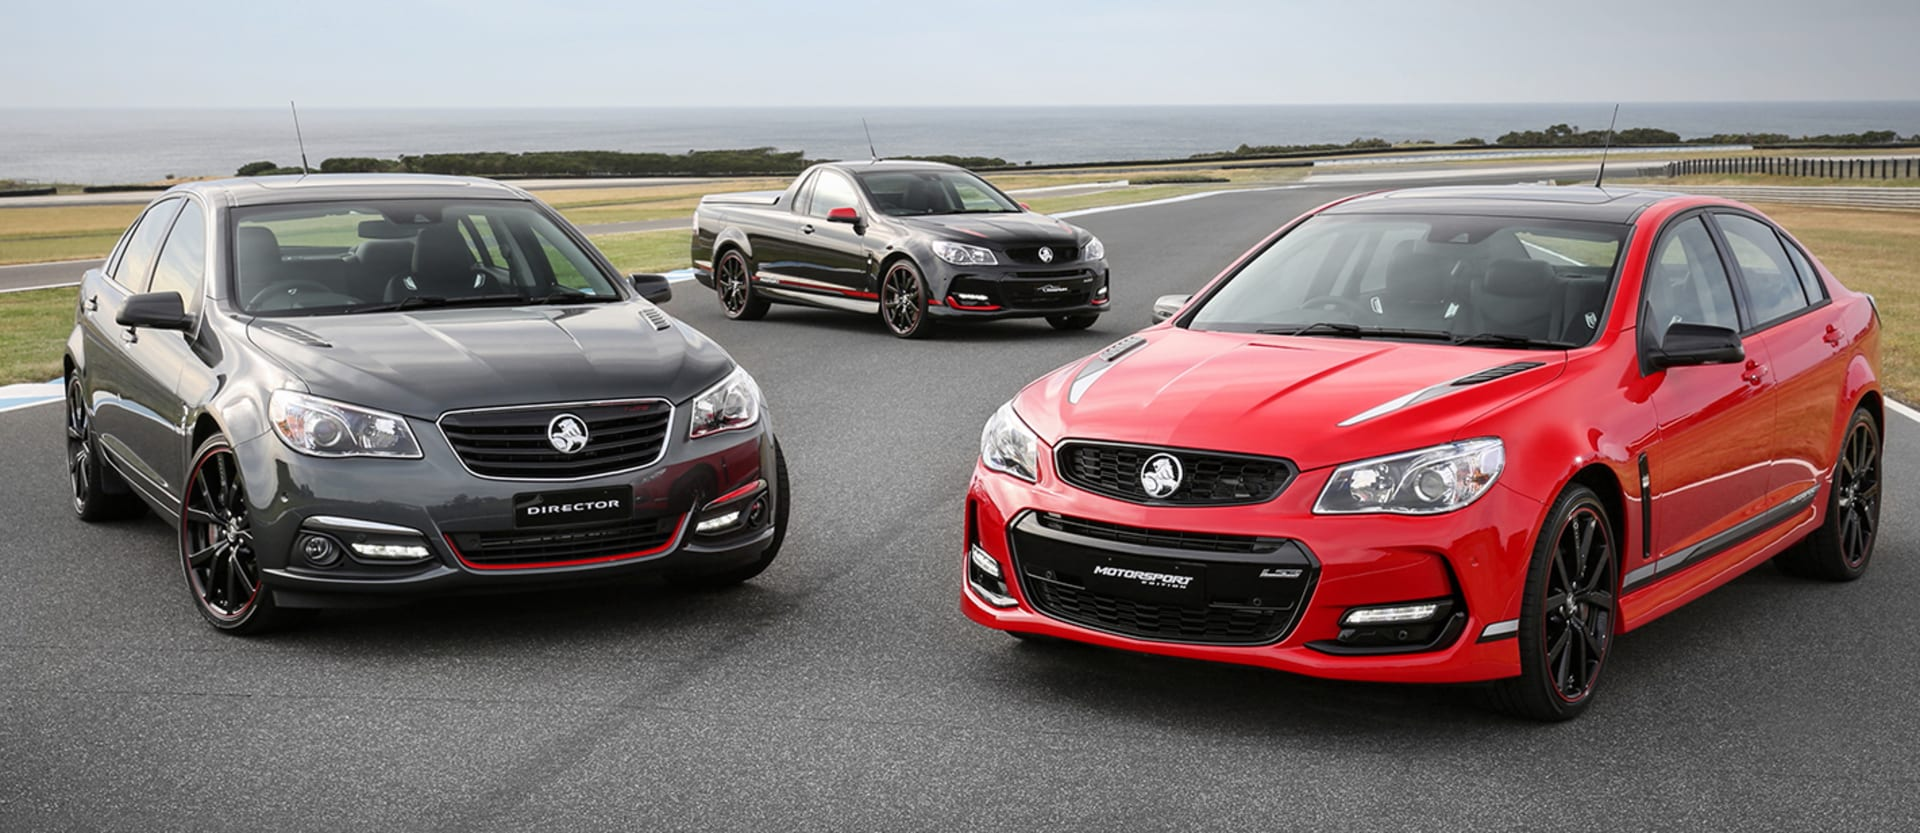 Holden Commodore VFII Special Editions